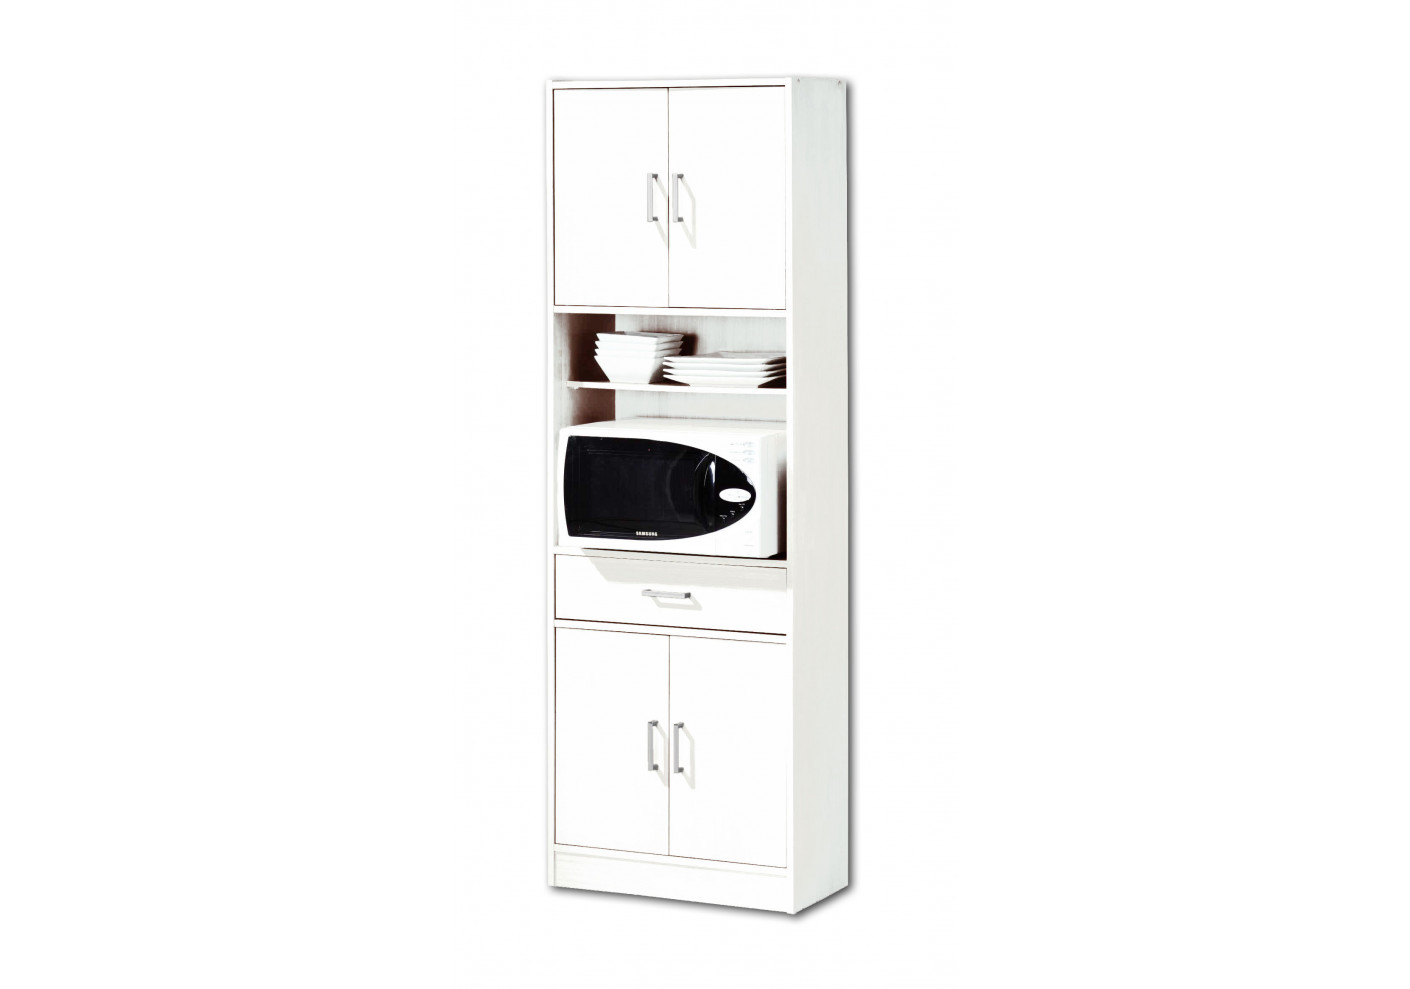 colonne de cuisine montblanc blanc dessertes de cuisine rangement. Black Bedroom Furniture Sets. Home Design Ideas